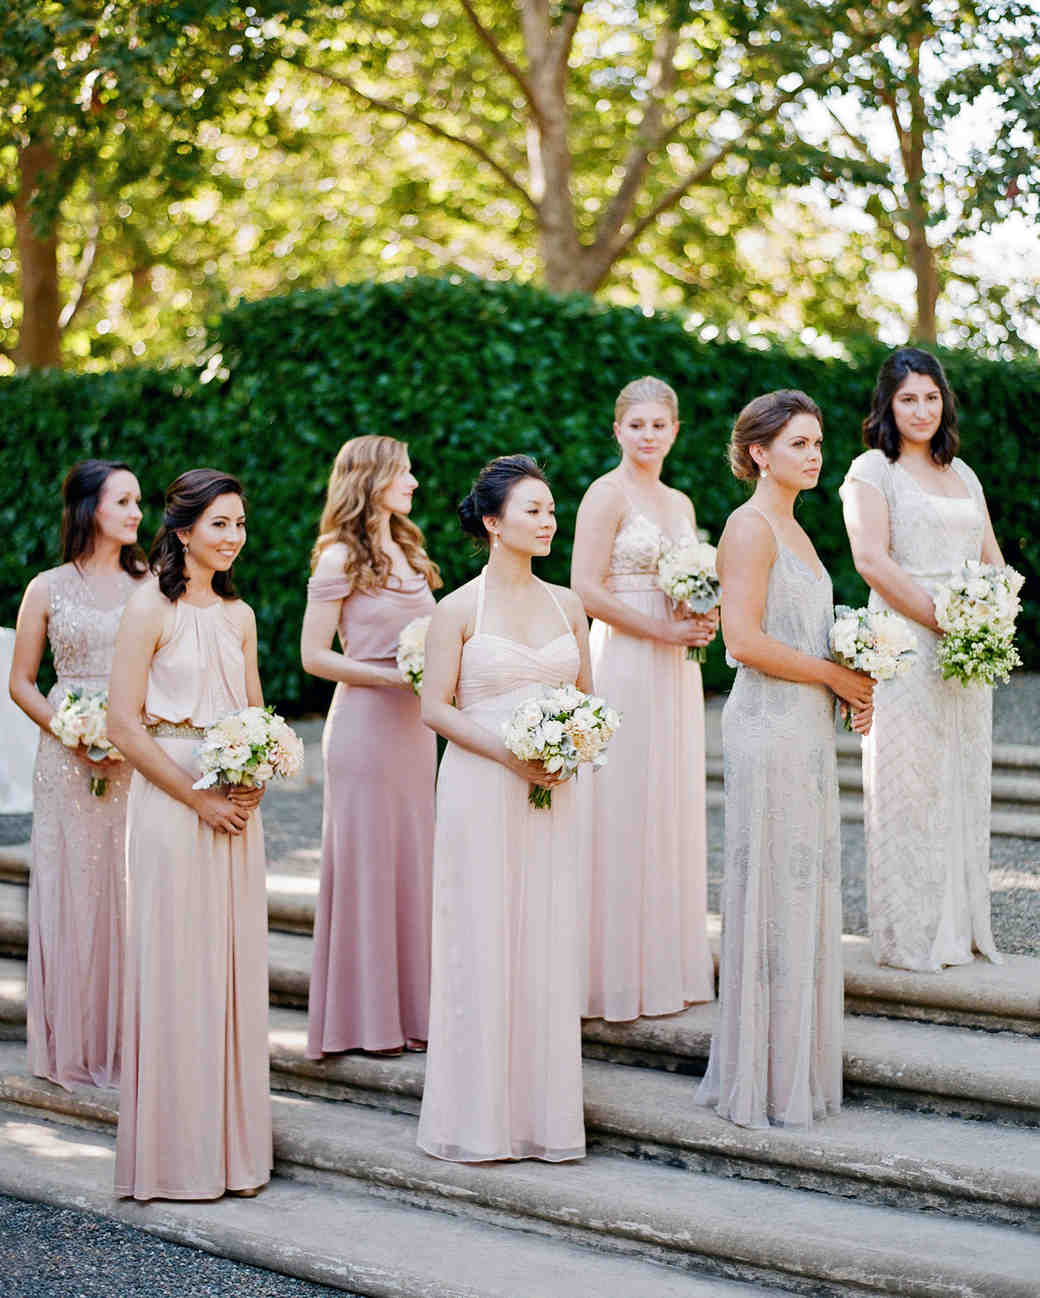 09e653ac414 28 Mismatched Bridesmaids Dresses from Real Weddings - Best Mix and Match Bridesmaids  Dresses